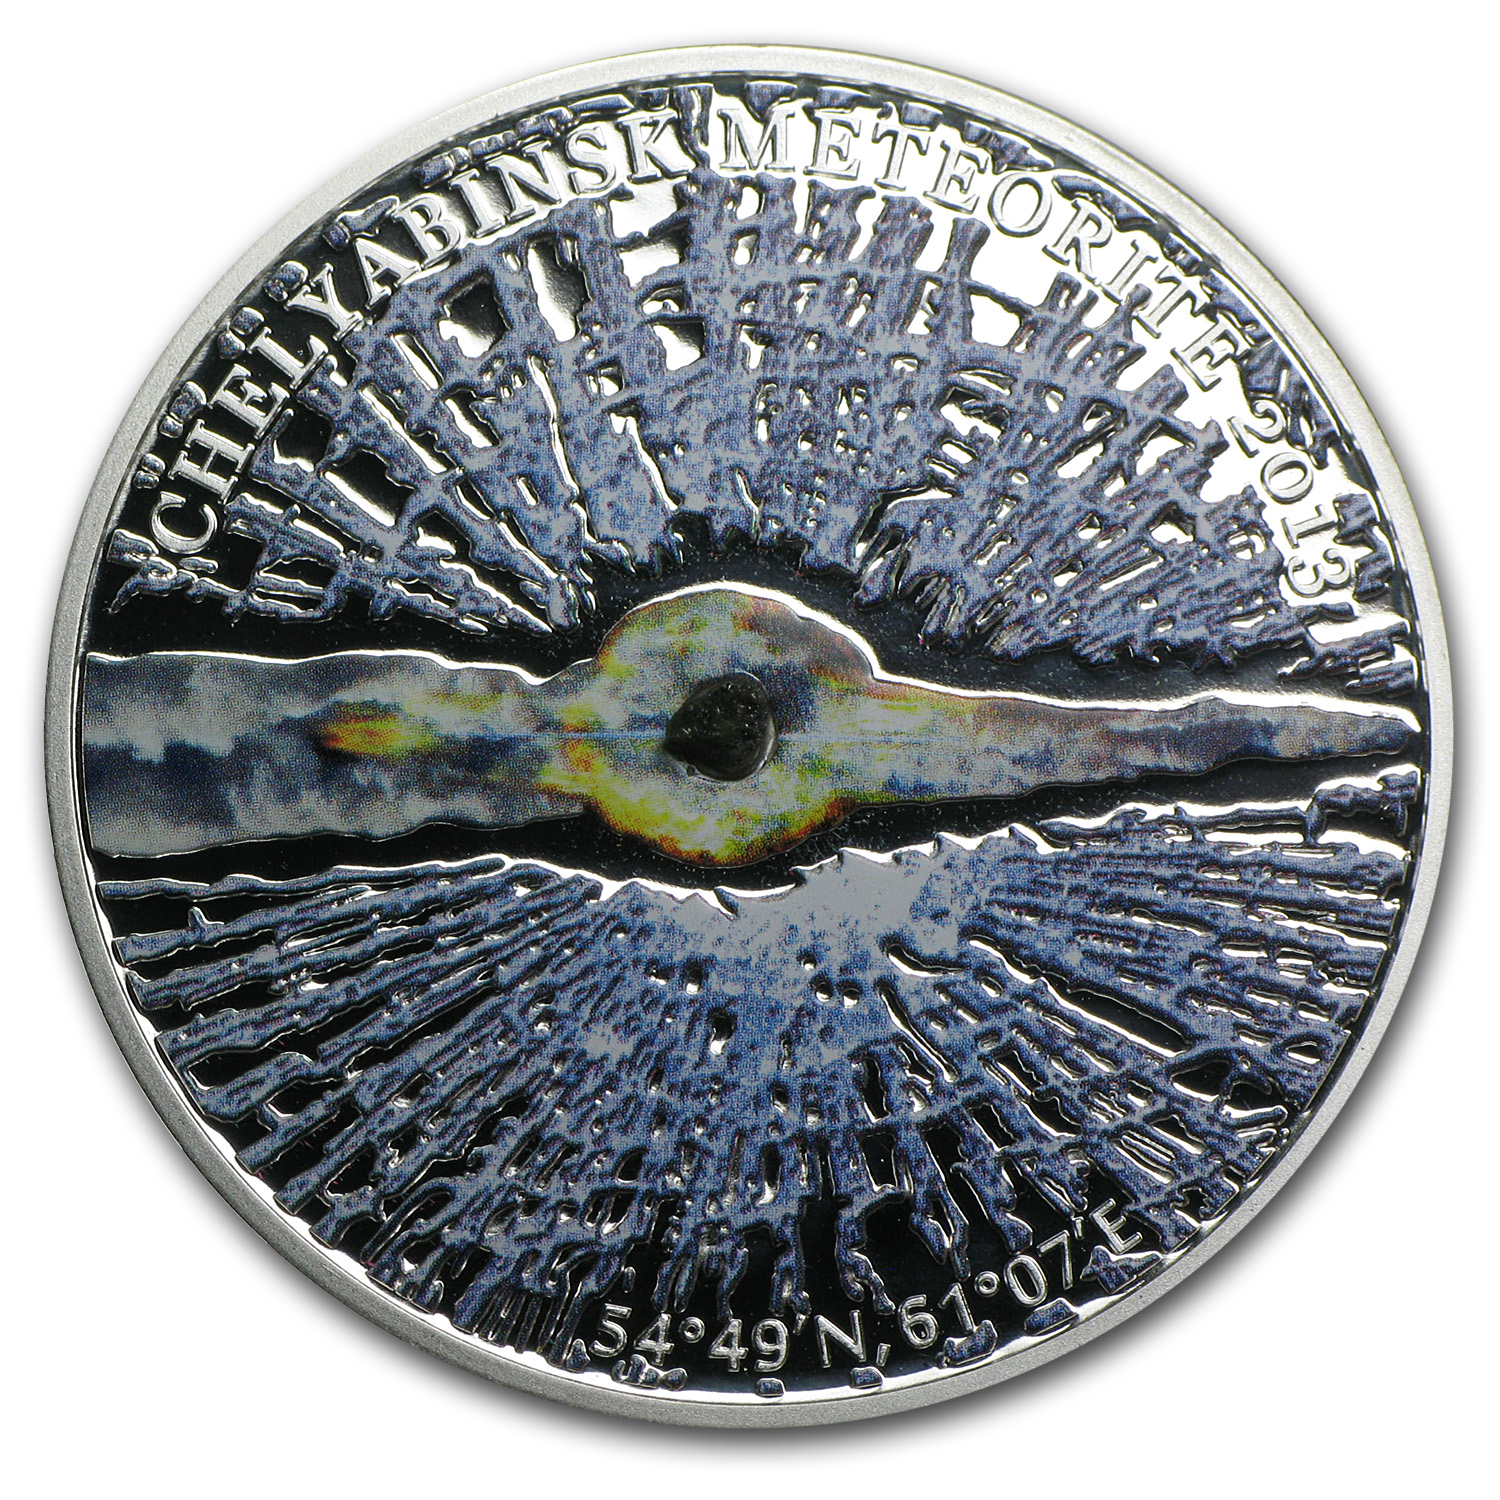 2013 Cook Islands Proof Silver $5 Chelyabinsk Meteorite